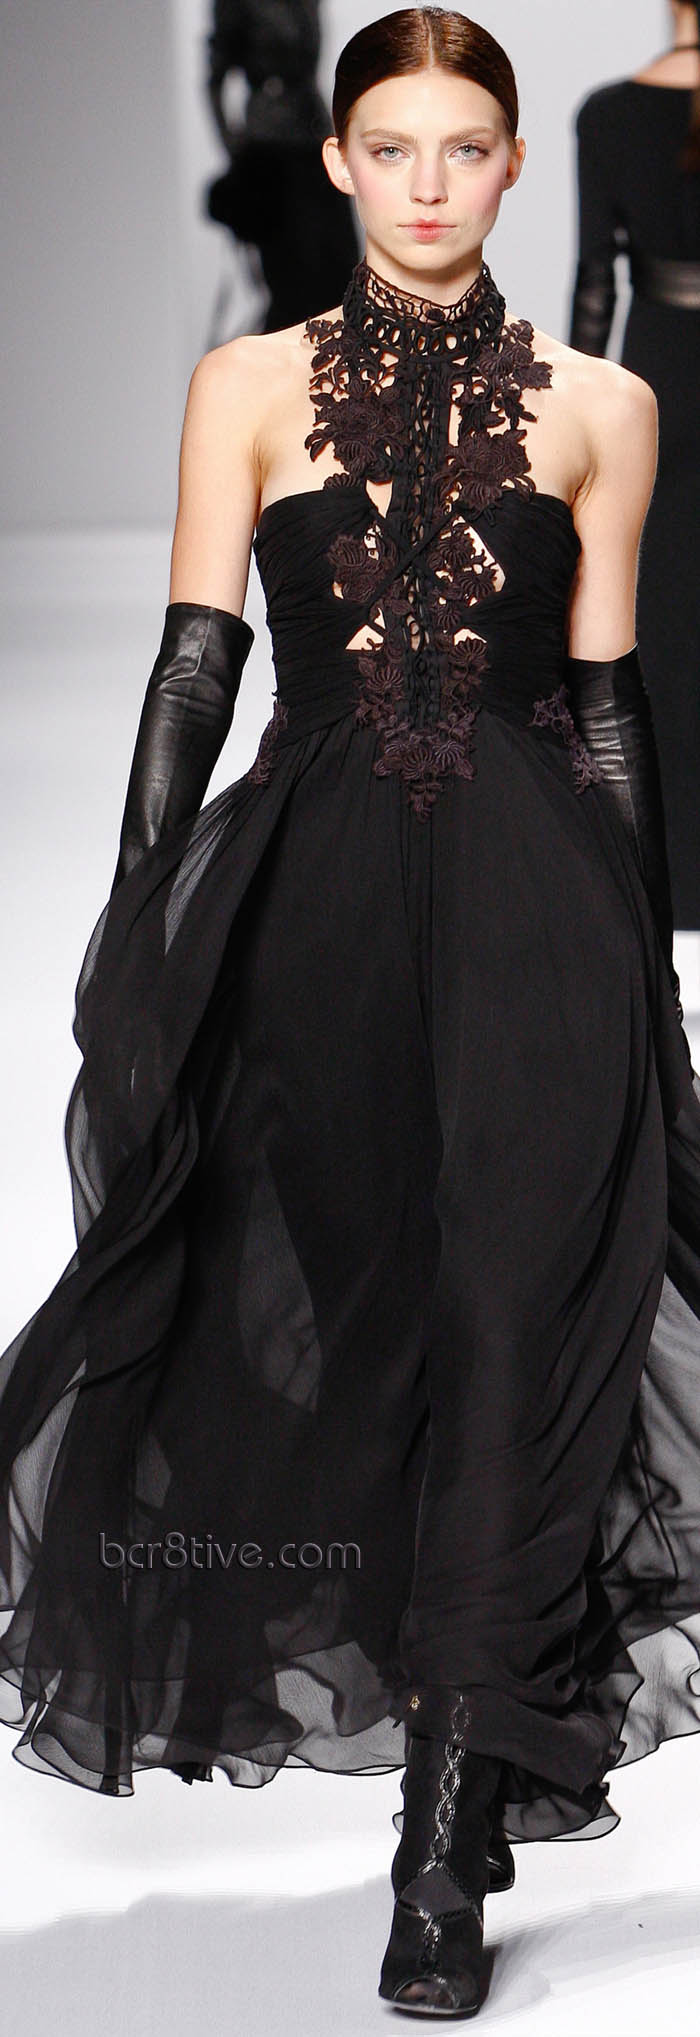 Elie Tahari Fall Winter 2012 Ready-To-Wear